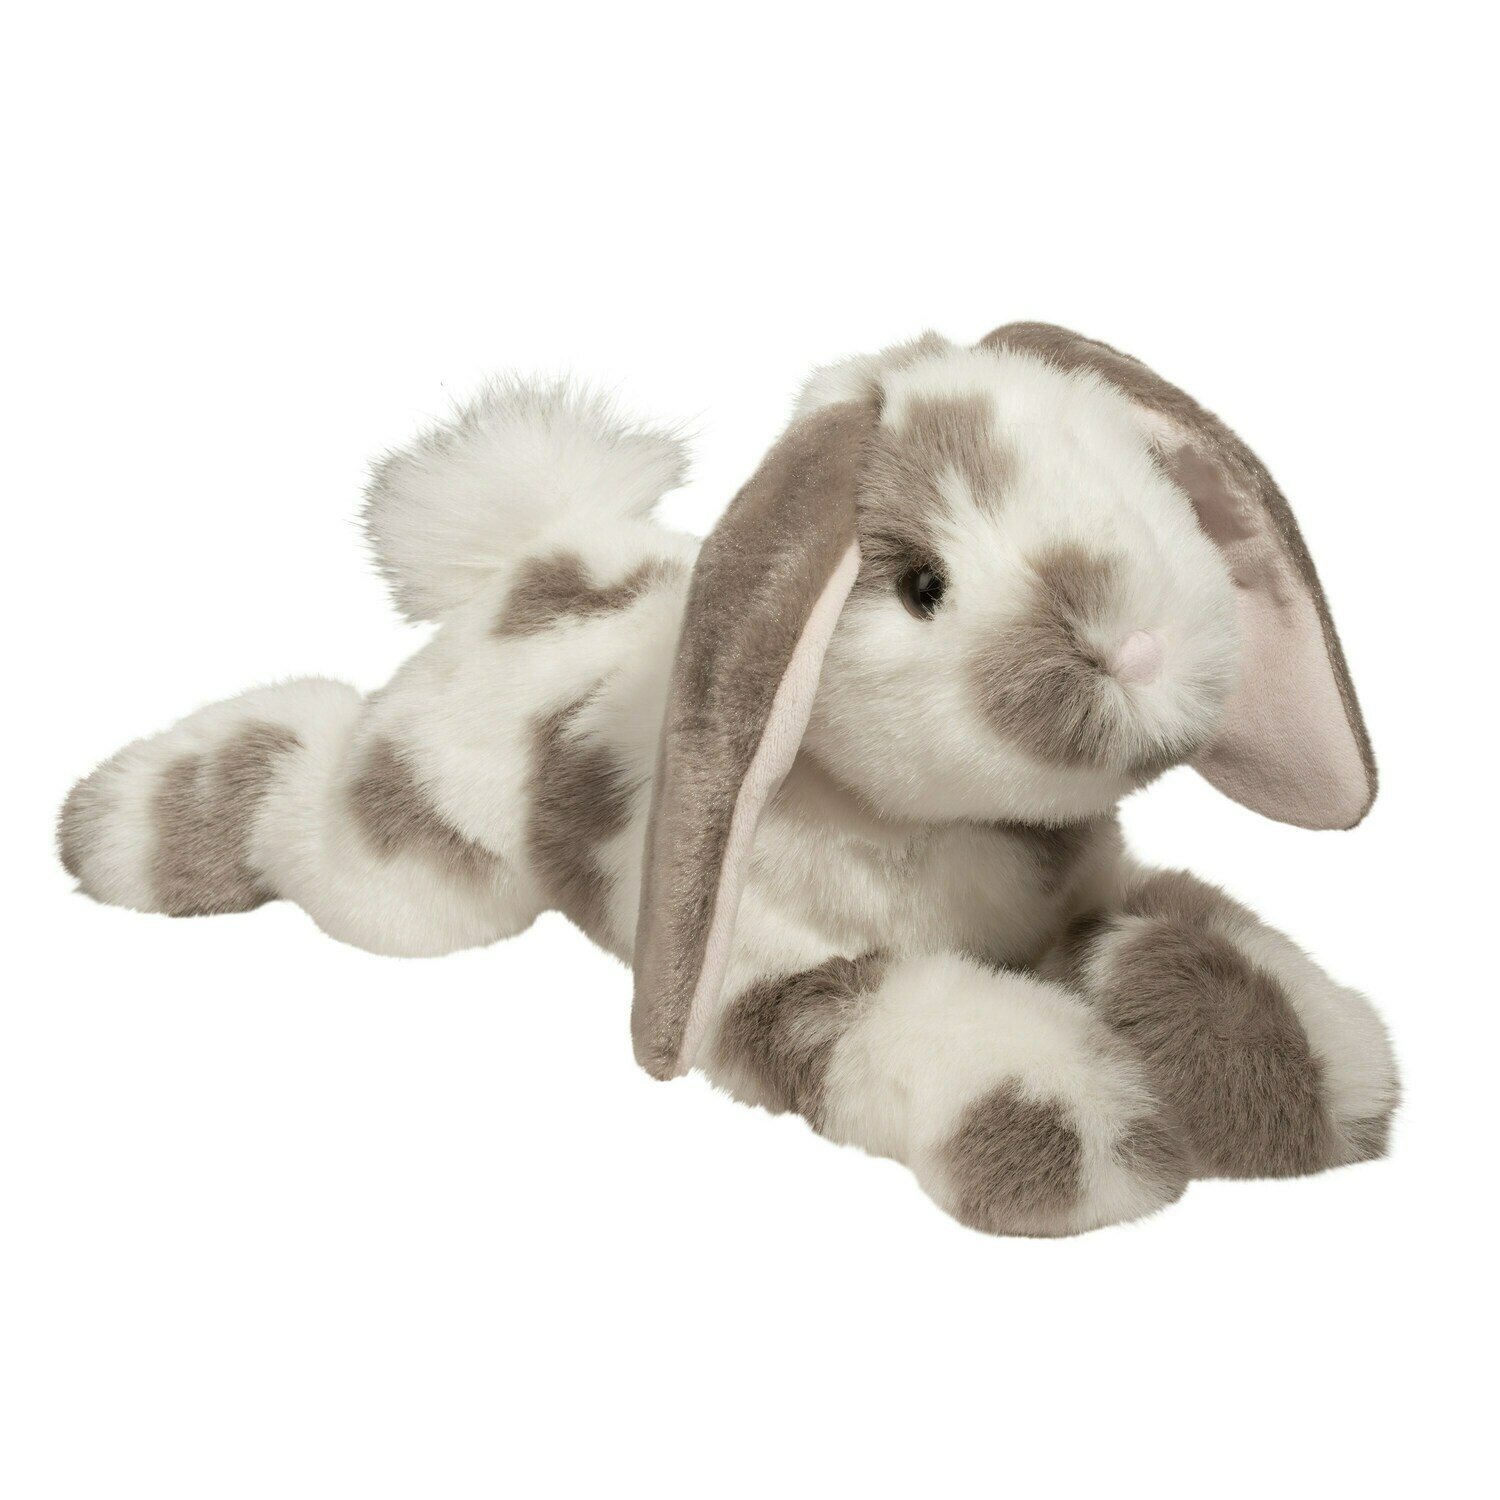 Ramsey DLux Gray Spotted Bunny